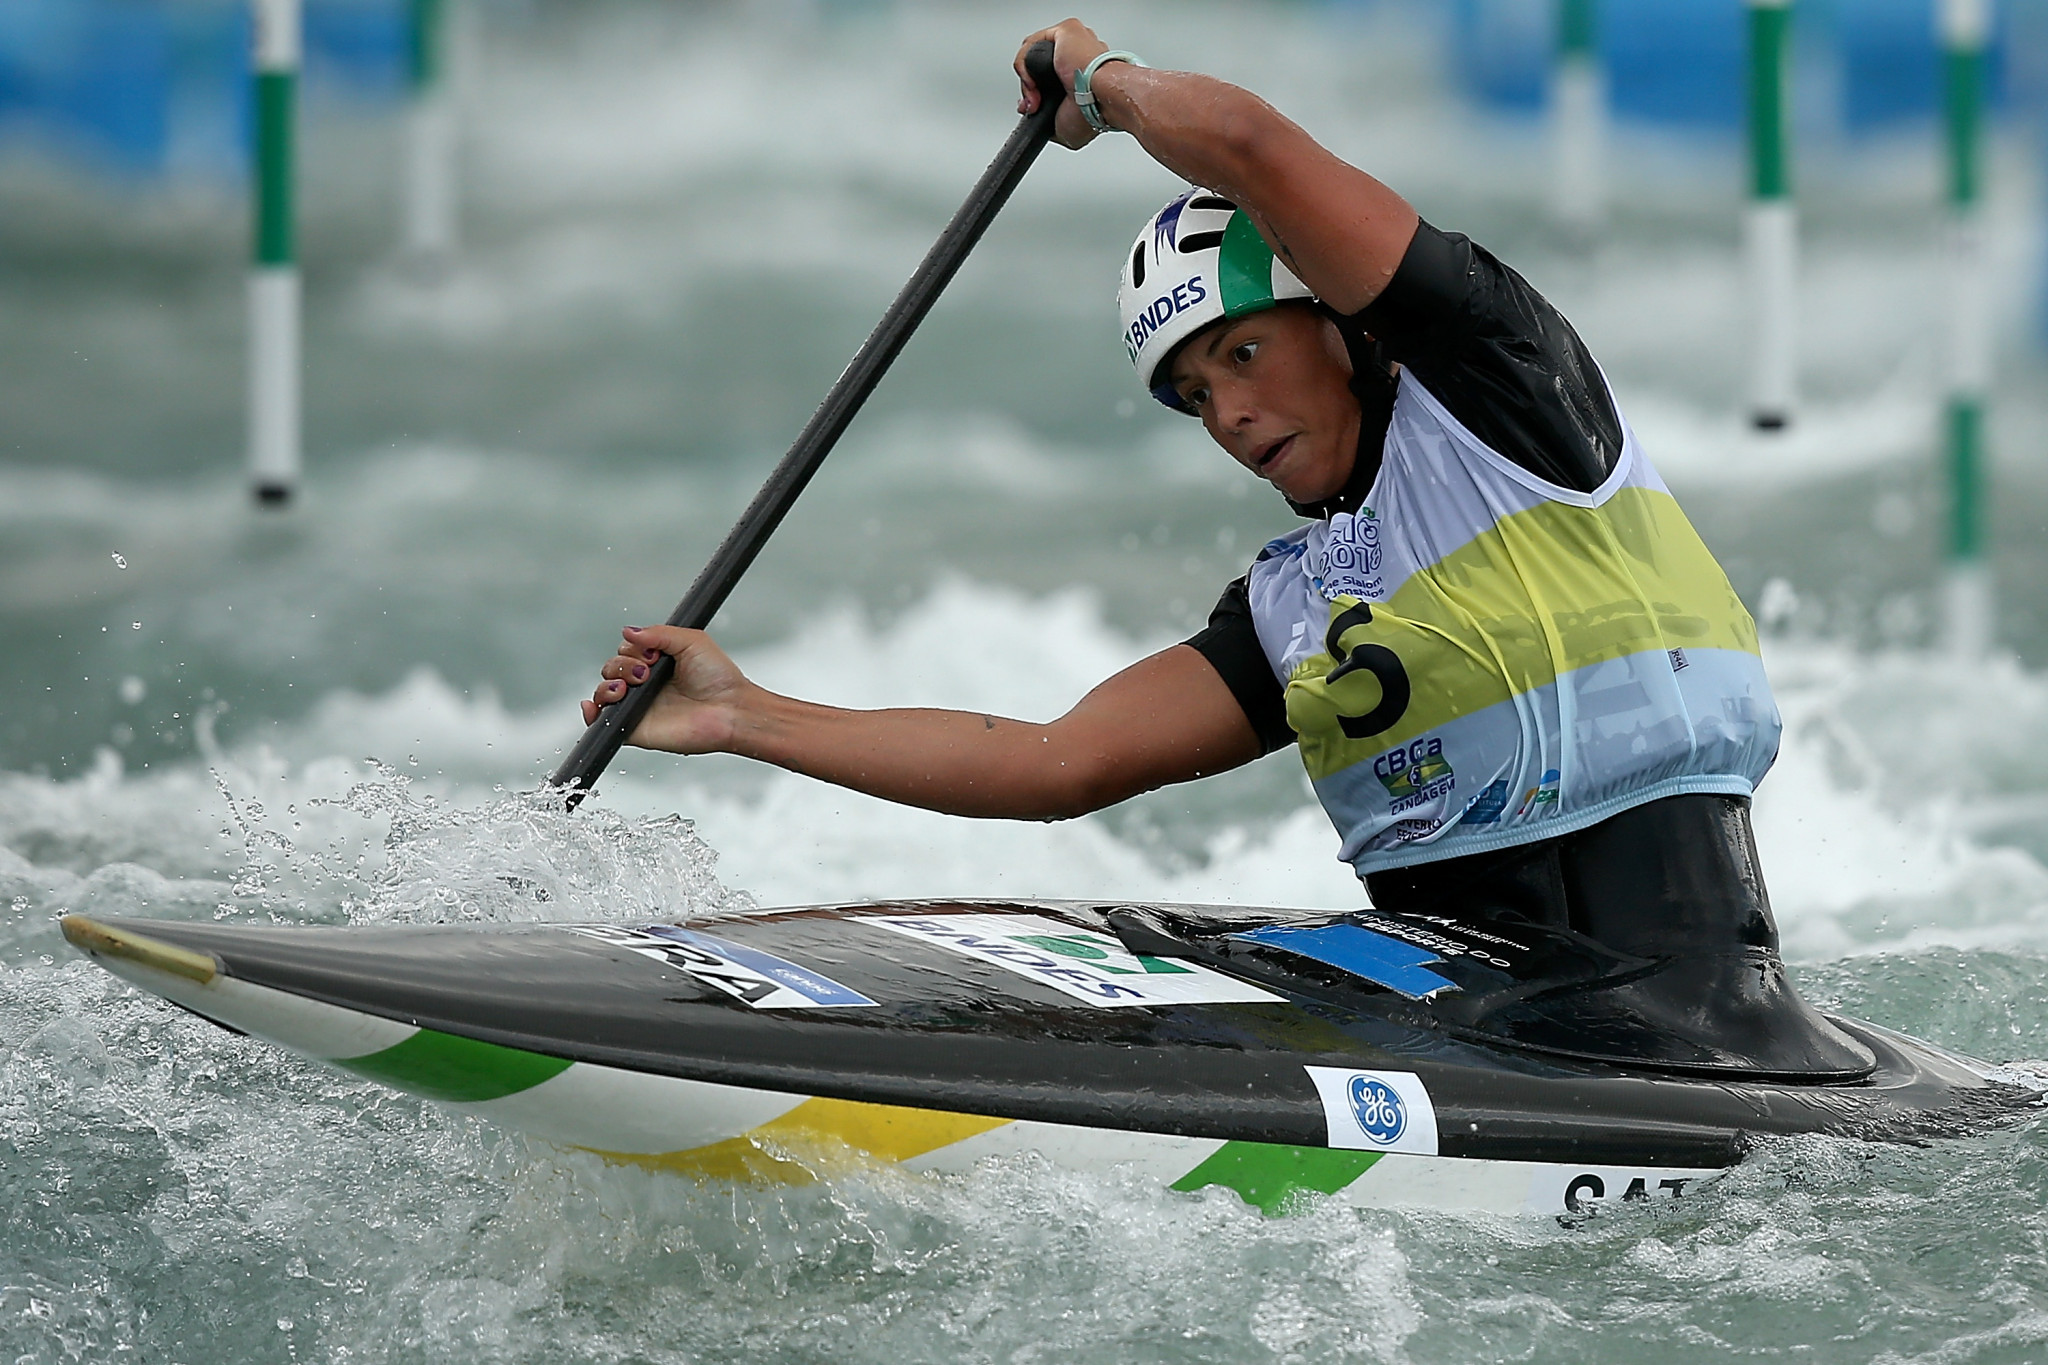 Brazil's Ana Satila claimed her first ICF Canoe Slalom World Cup gold in Tacen ©Getty Images